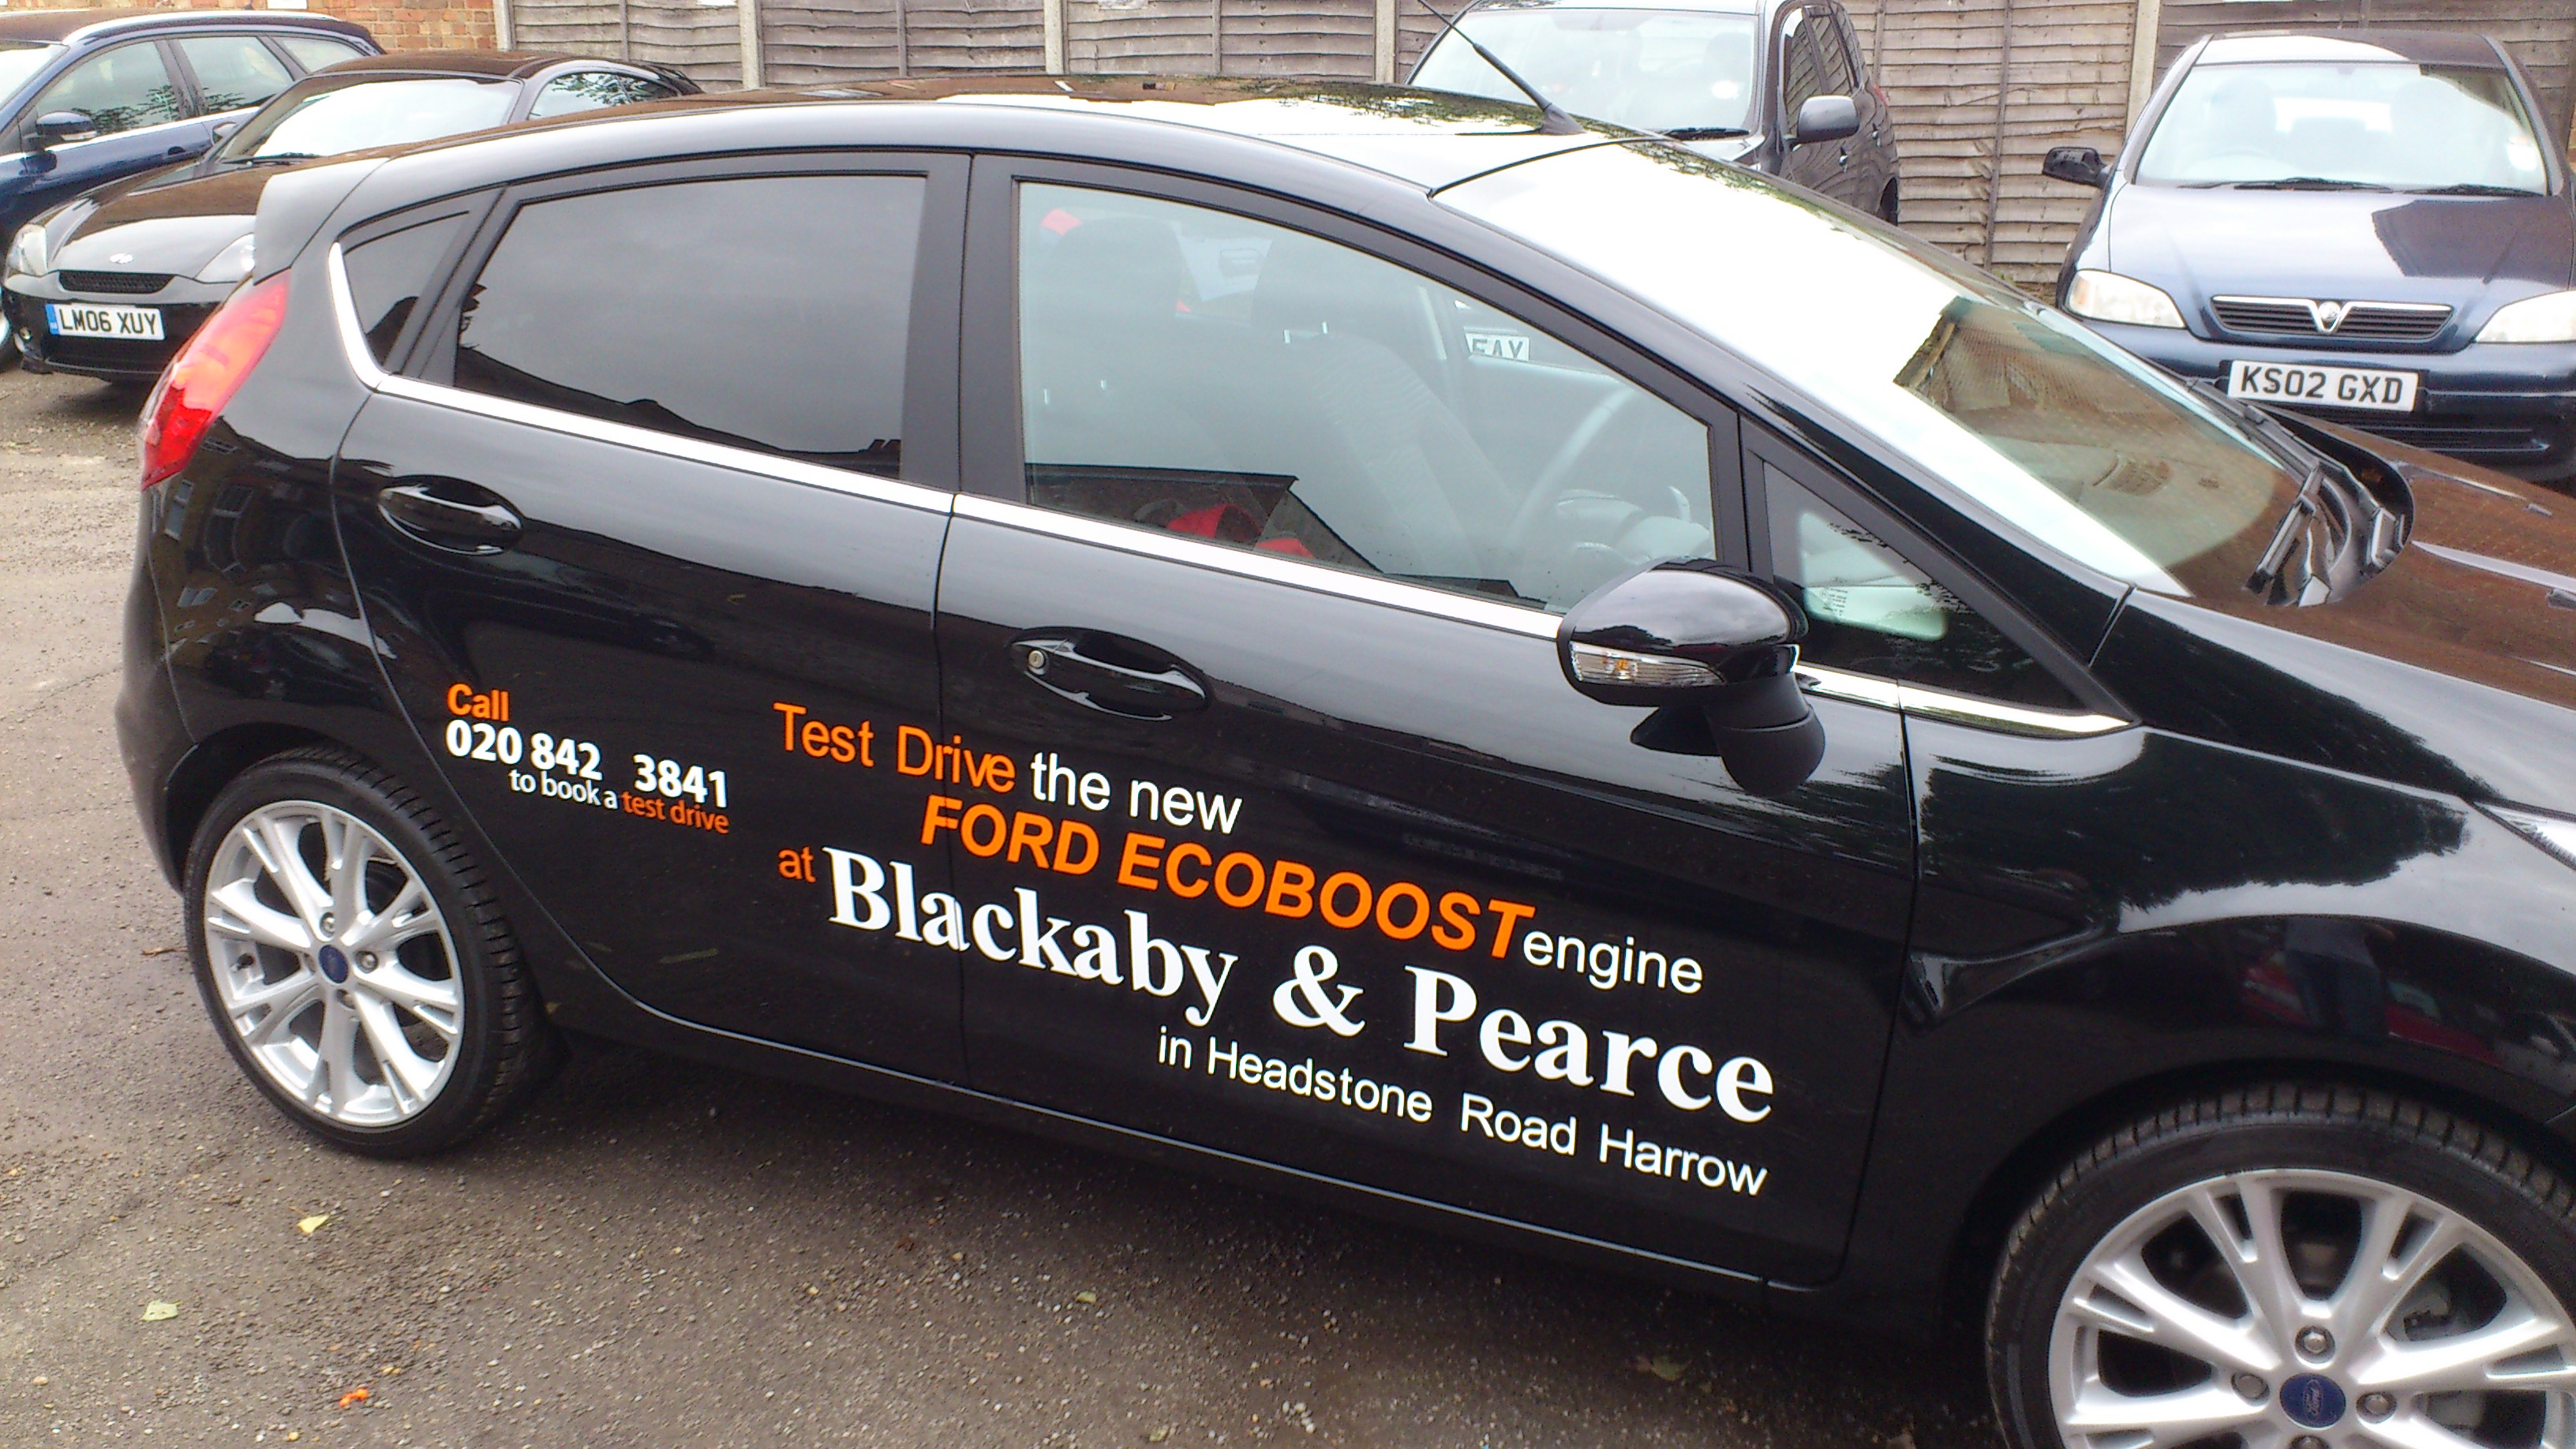 Car stickers advertising - Car Sticker For Blackaby Pearce October 25th 2013admin